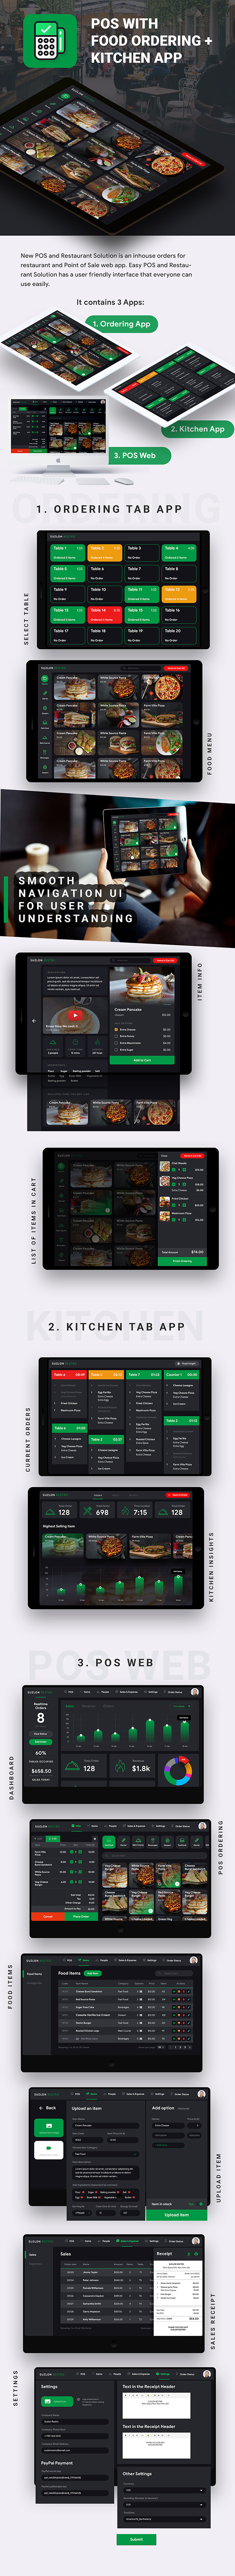 POS with Kitchen & Delivery App Template (HMTL + Css) IONIC 5 - 2